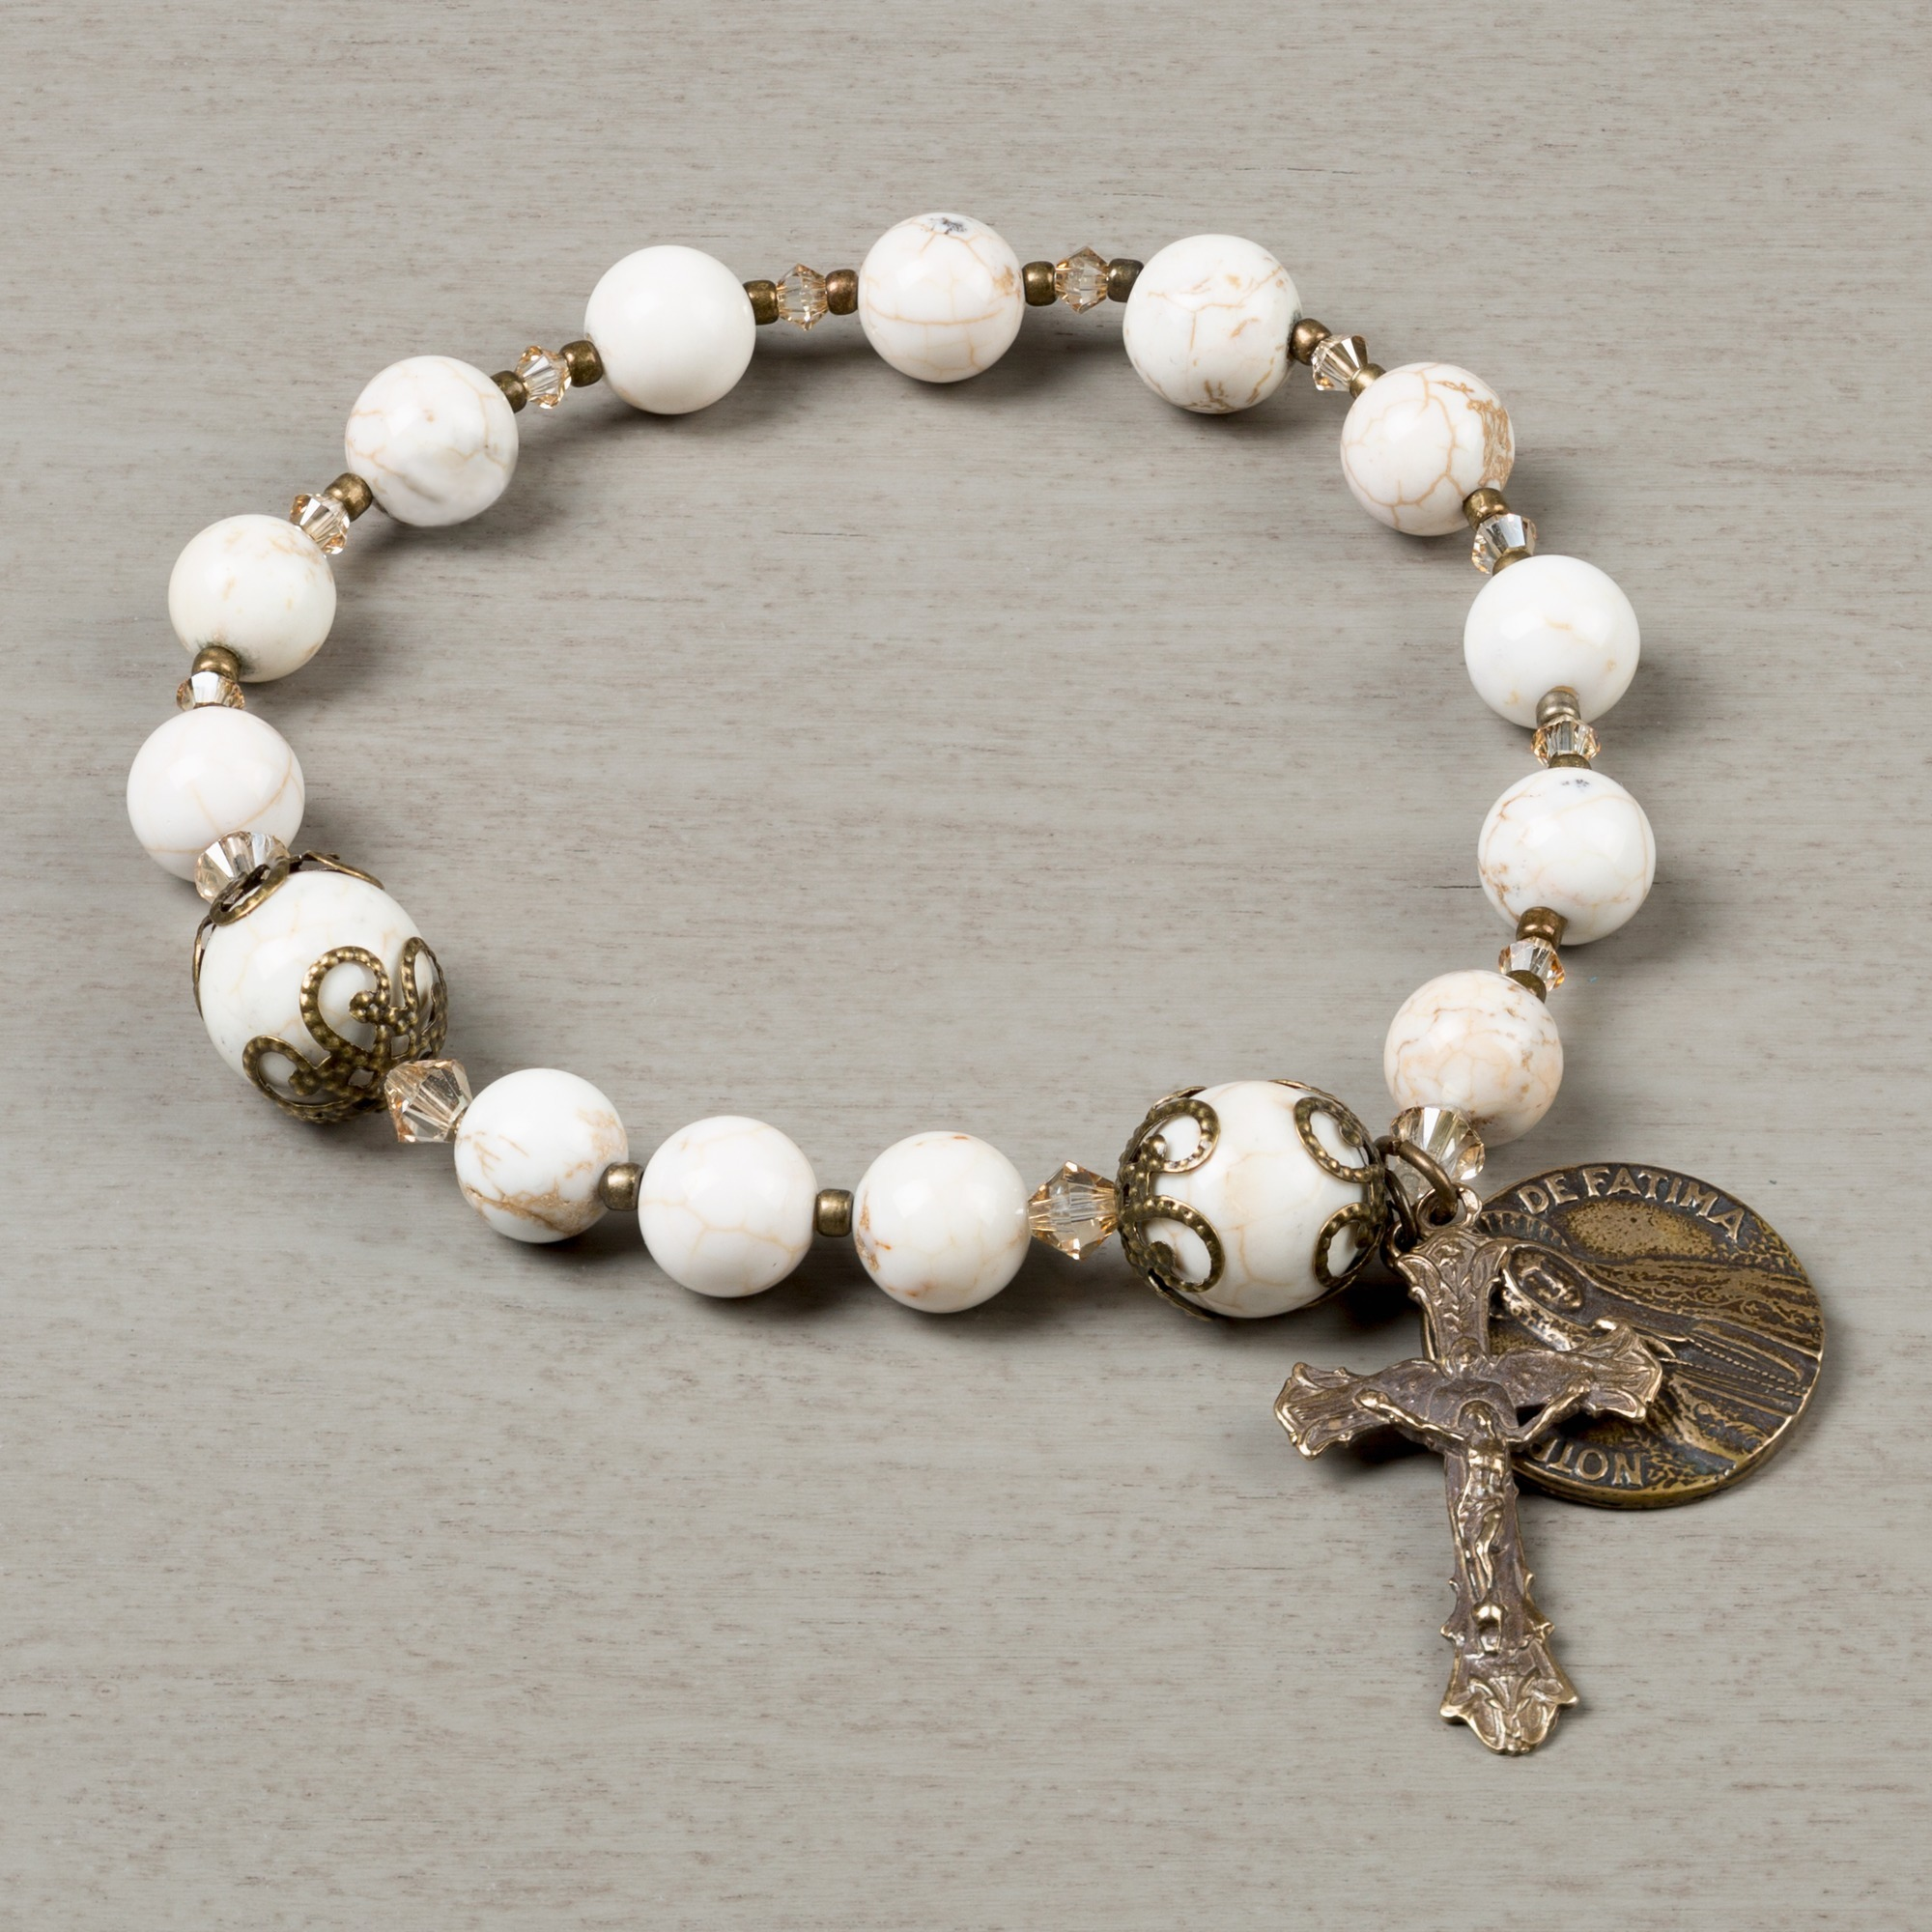 church souls bracelets rosary holy the catholic company bracelet stretch